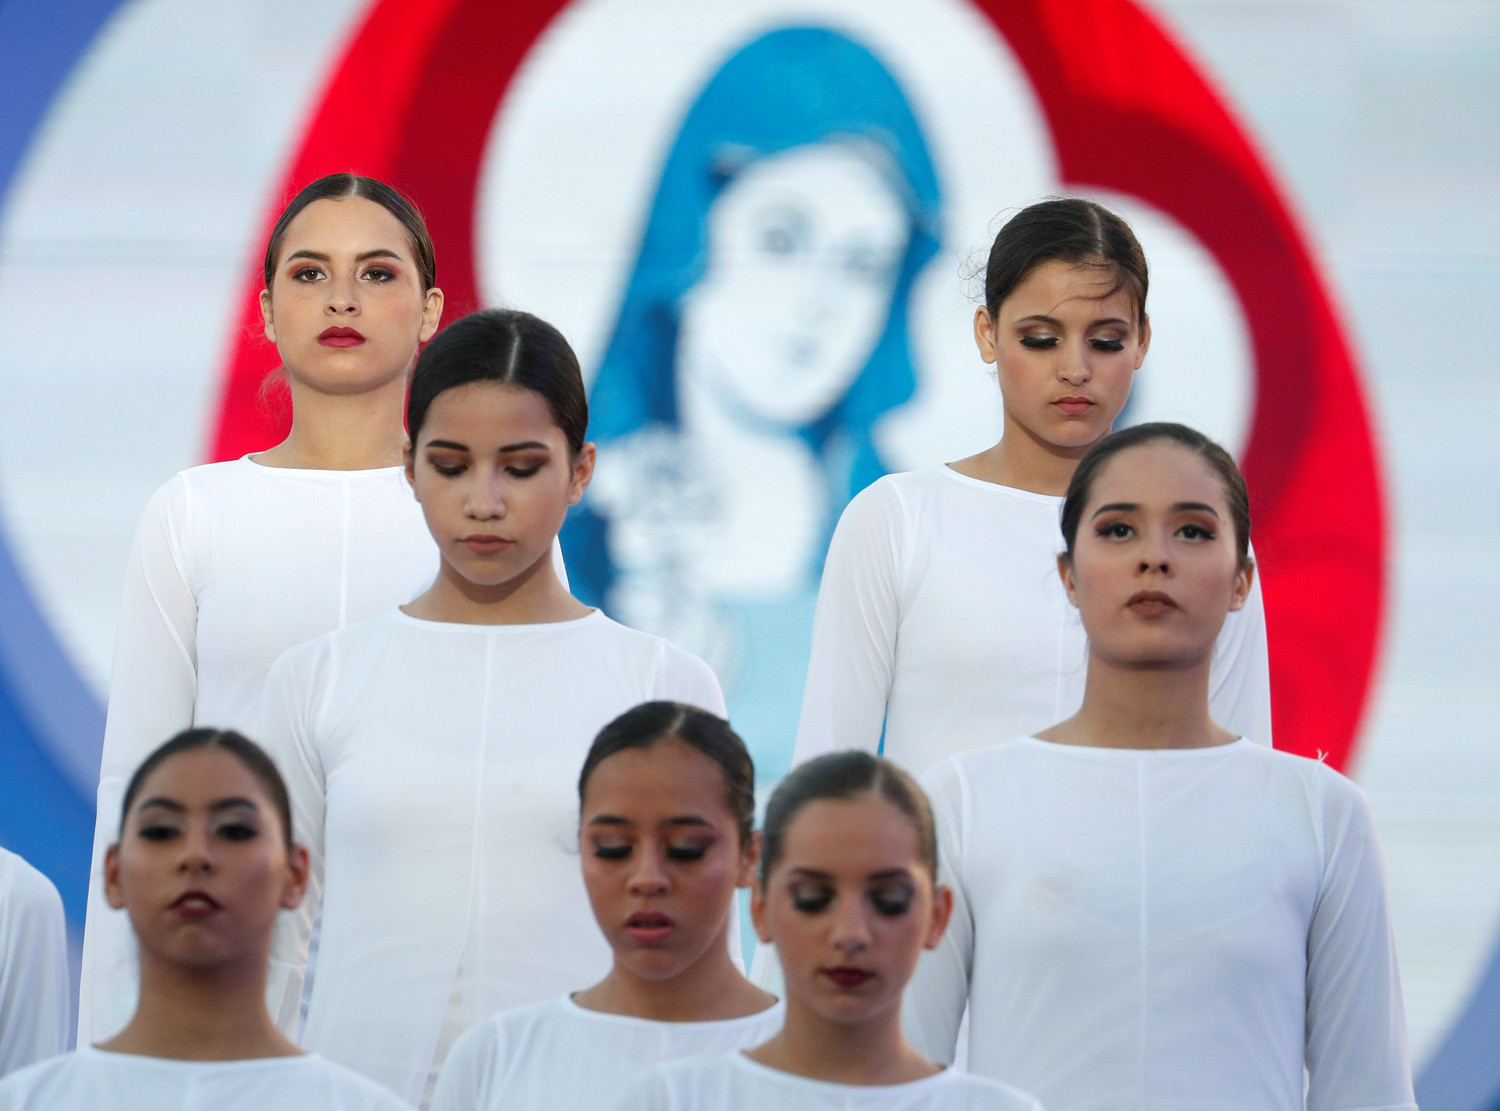 Dancers perform for World Youth Day pilgrims and Pope Francis during the Way of the Cross at Santa Maria la Antigua Field in Panama City Jan. 25, 2019.